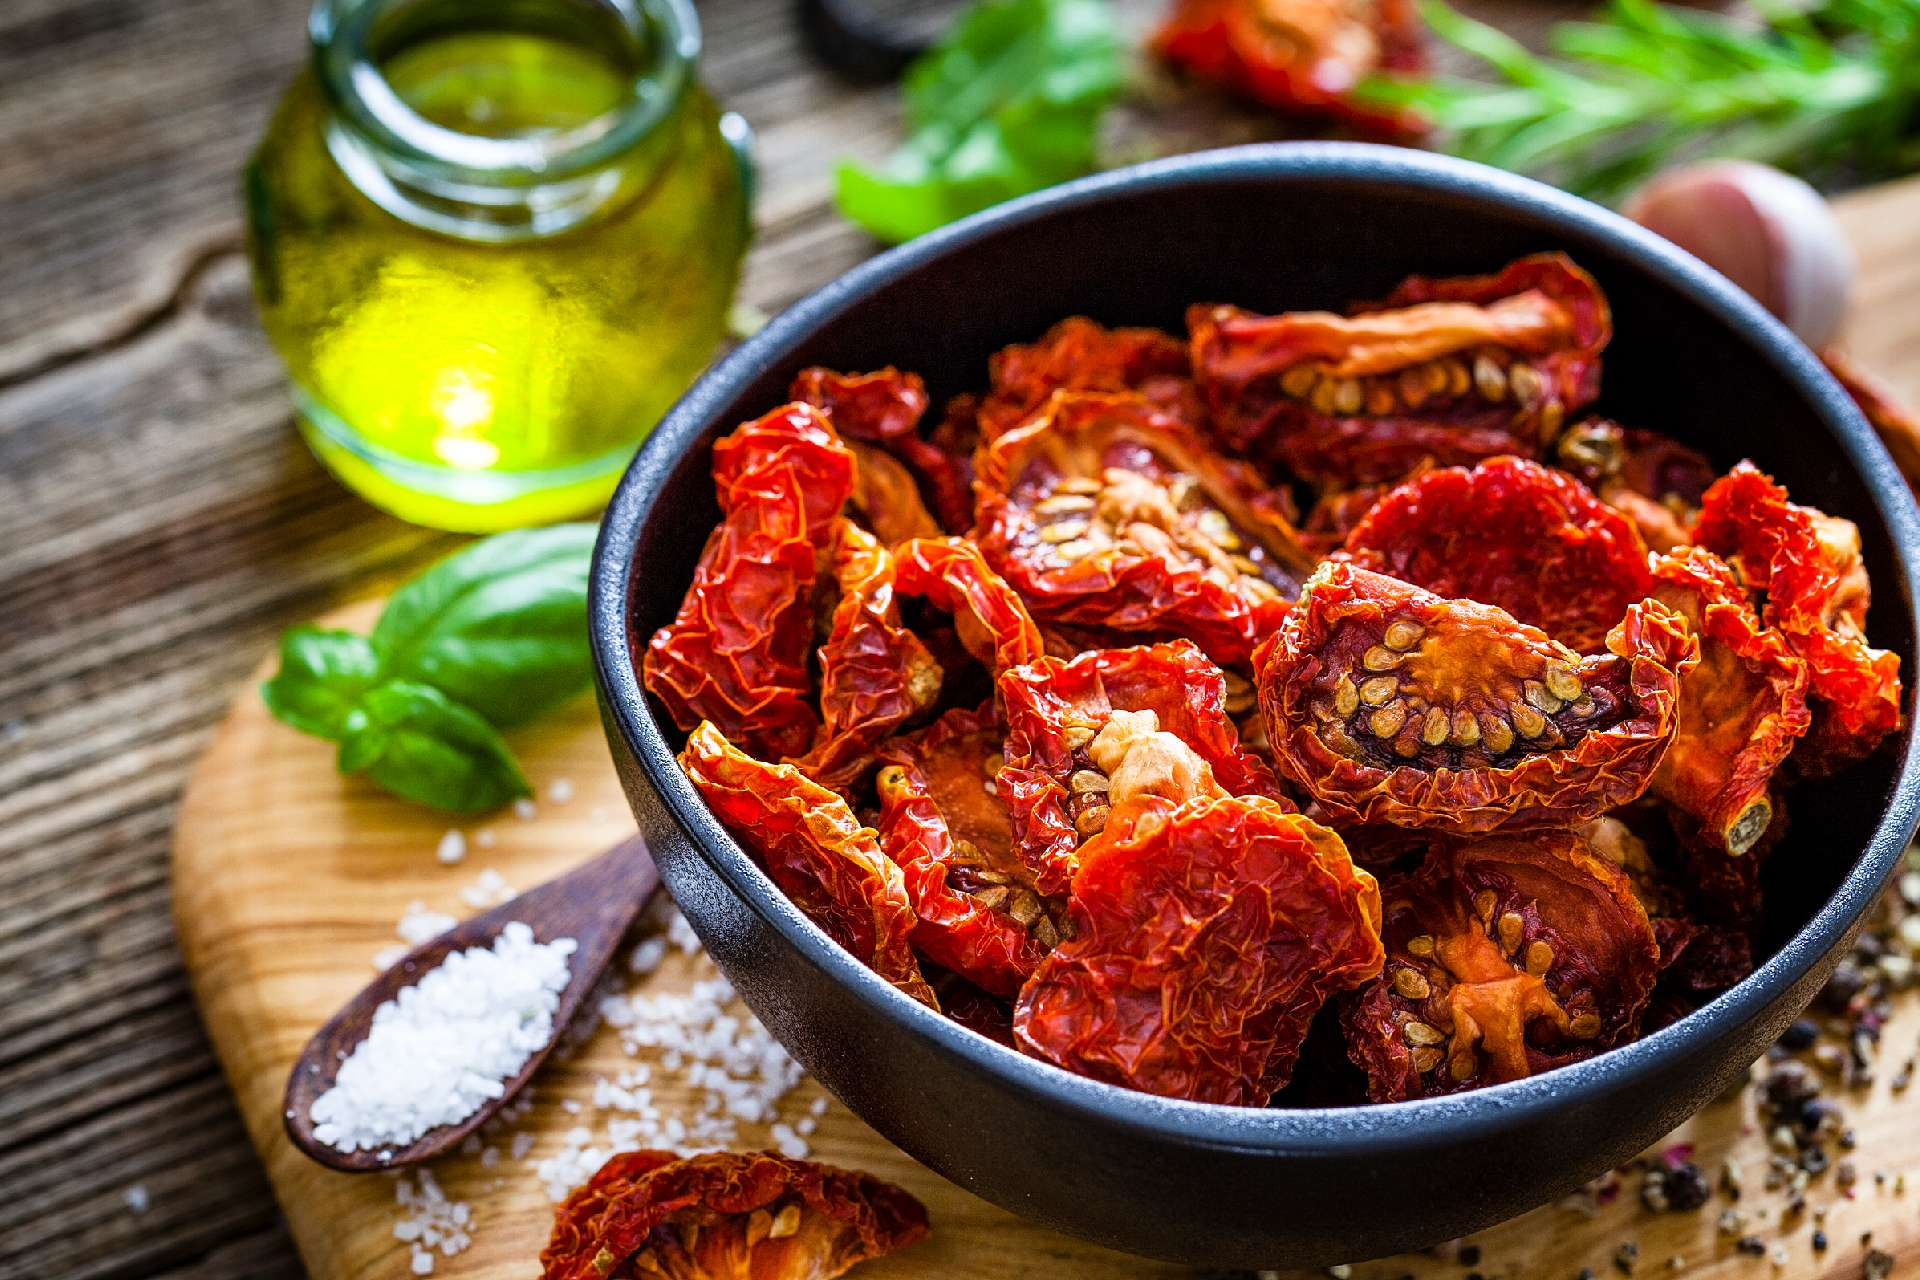 home made sun dried tomatoes ©iStock